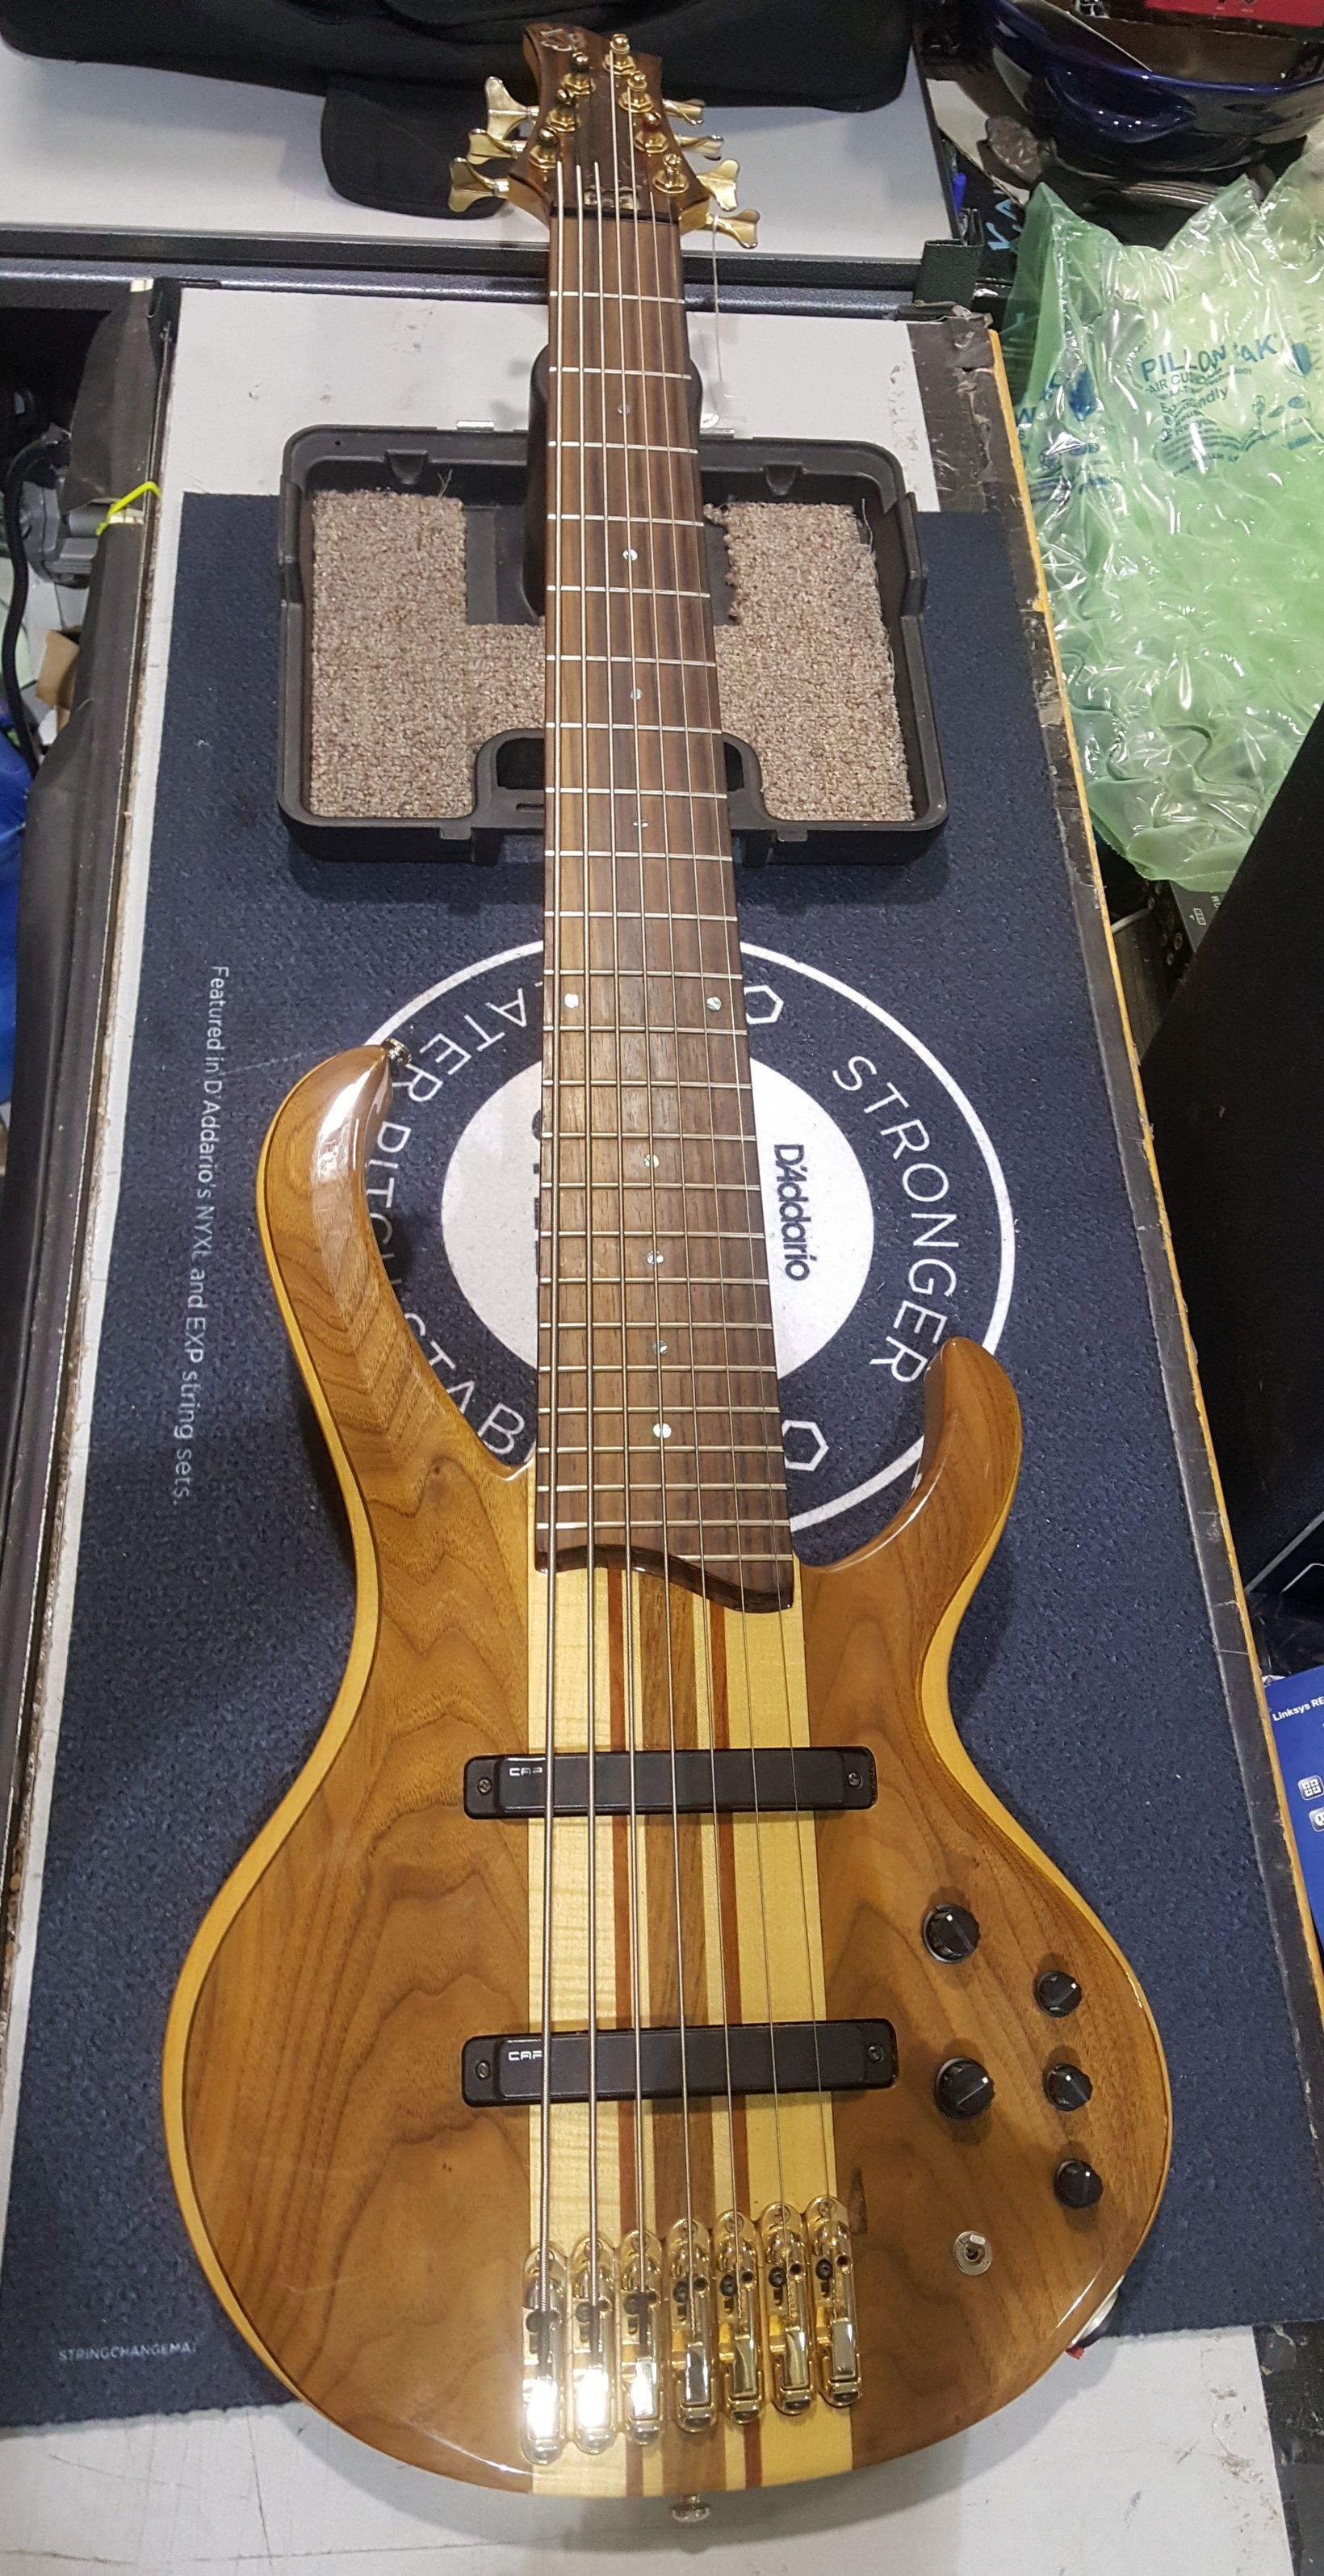 IBANEZ BTB7 7-String Electric Bass Guitar Natural Gloss Finish with Gig Bag!